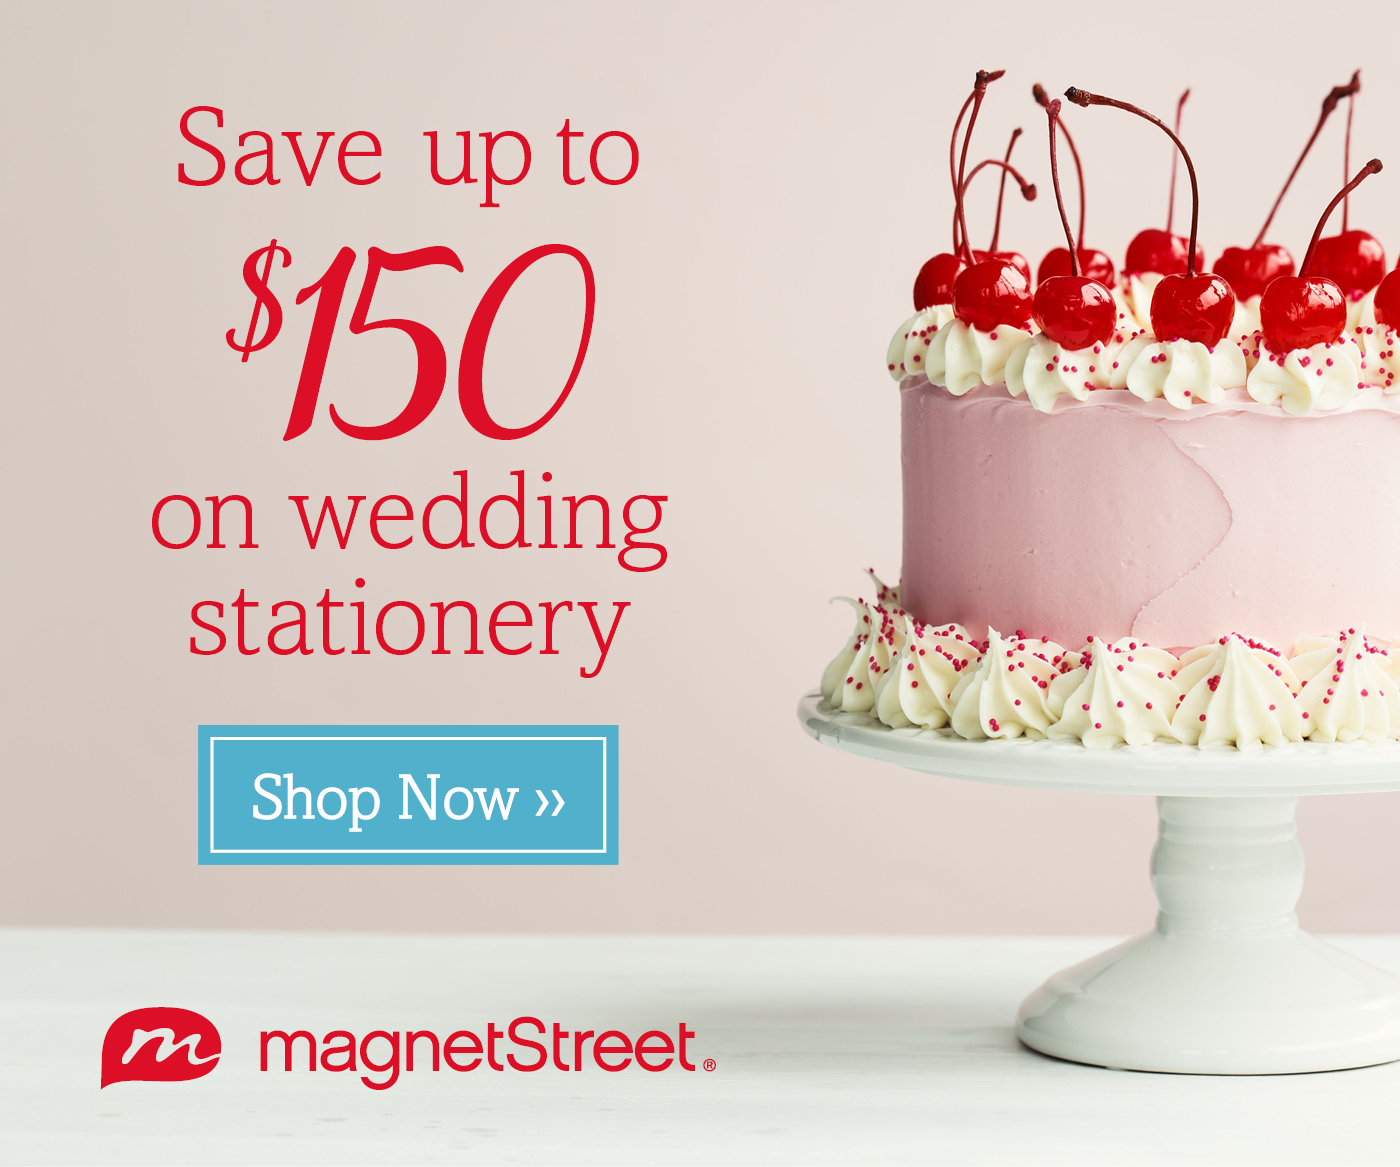 Save up to $150 on Wedding Stationary at MagnetStreet.com